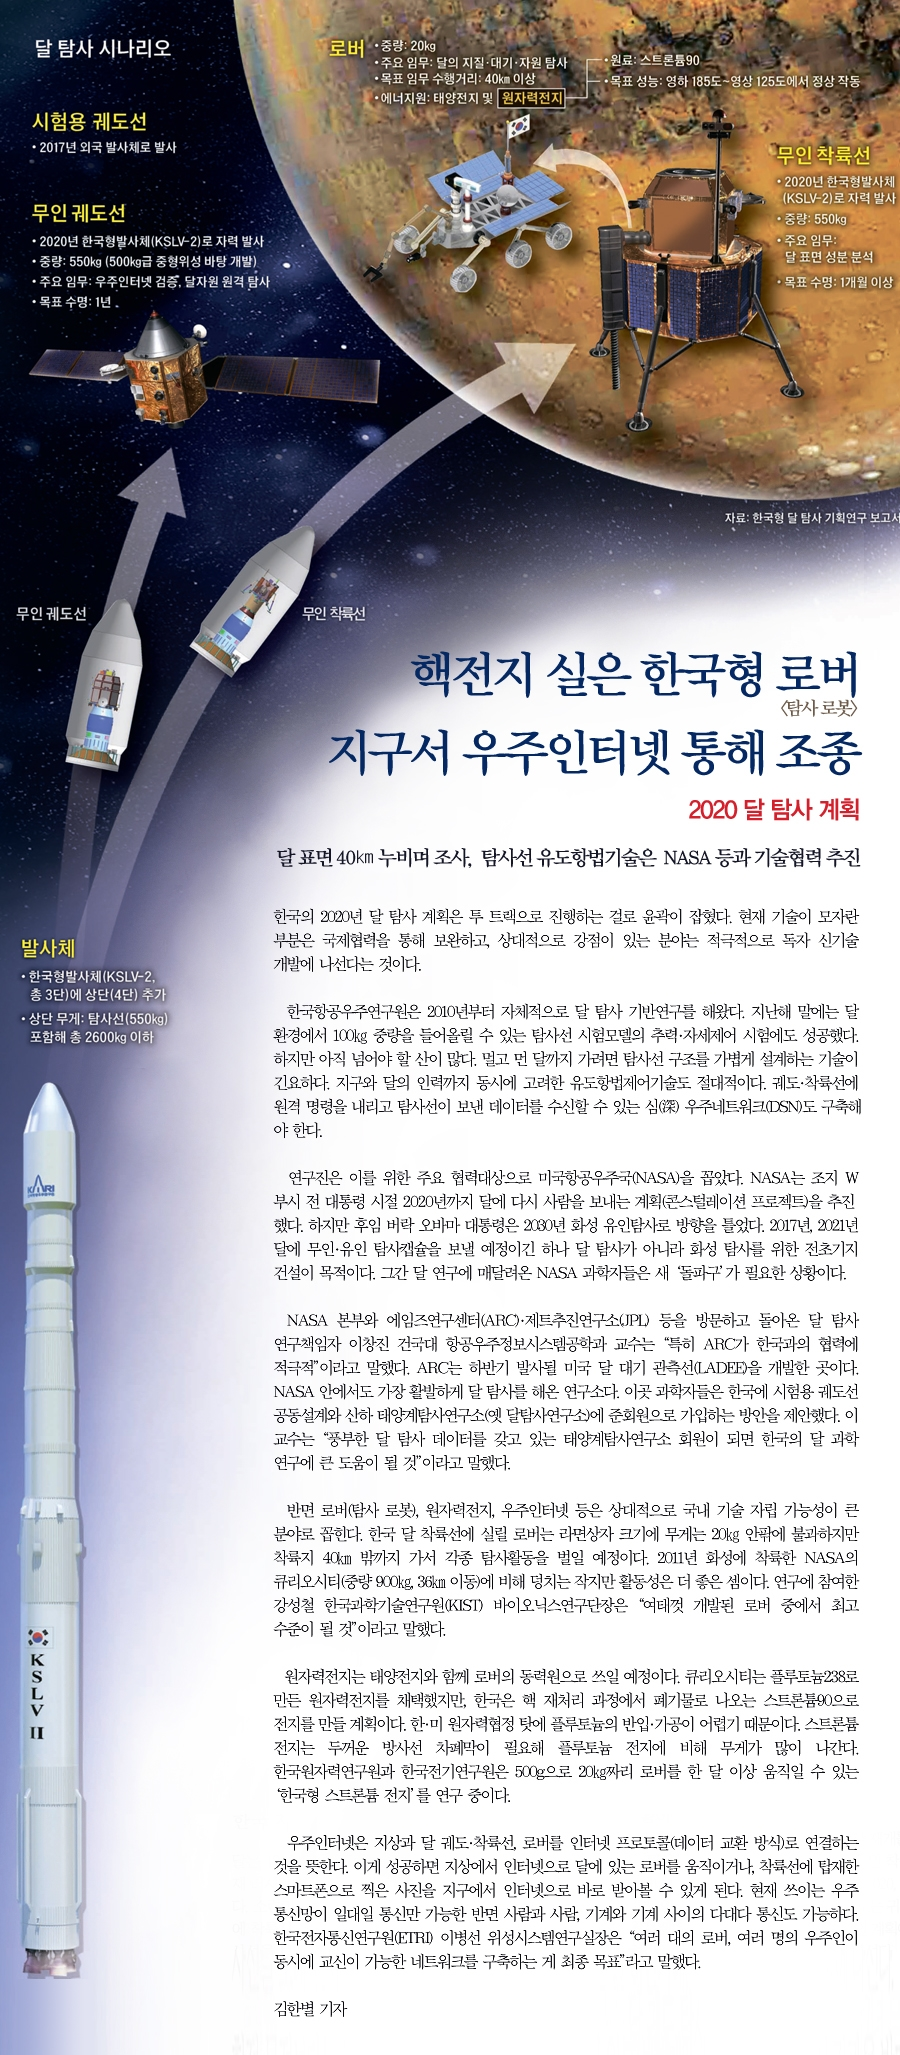 South Korea lunar mission infographic (Credits:  Joongang Ilbo).